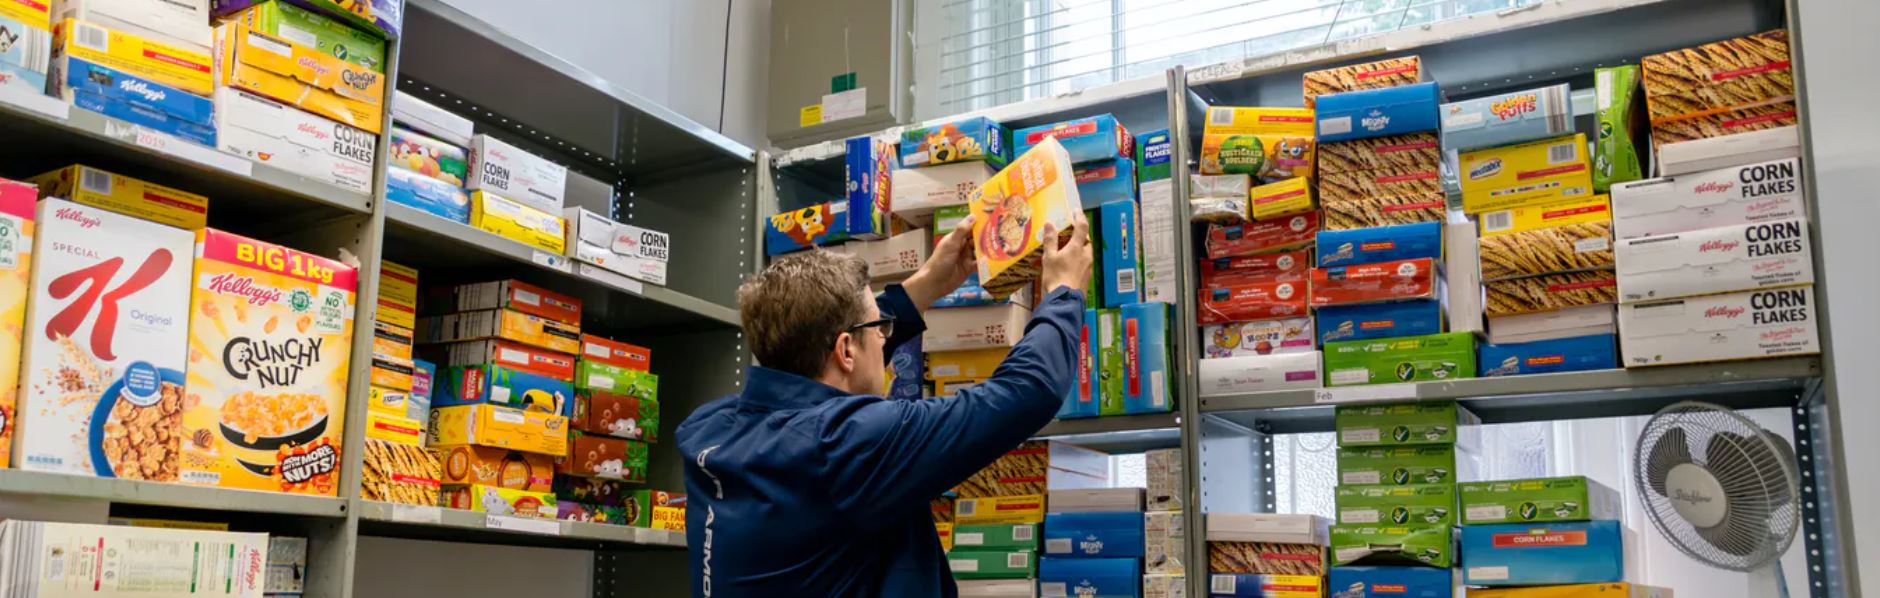 Man reaches for groceries off a shelf in a food bank